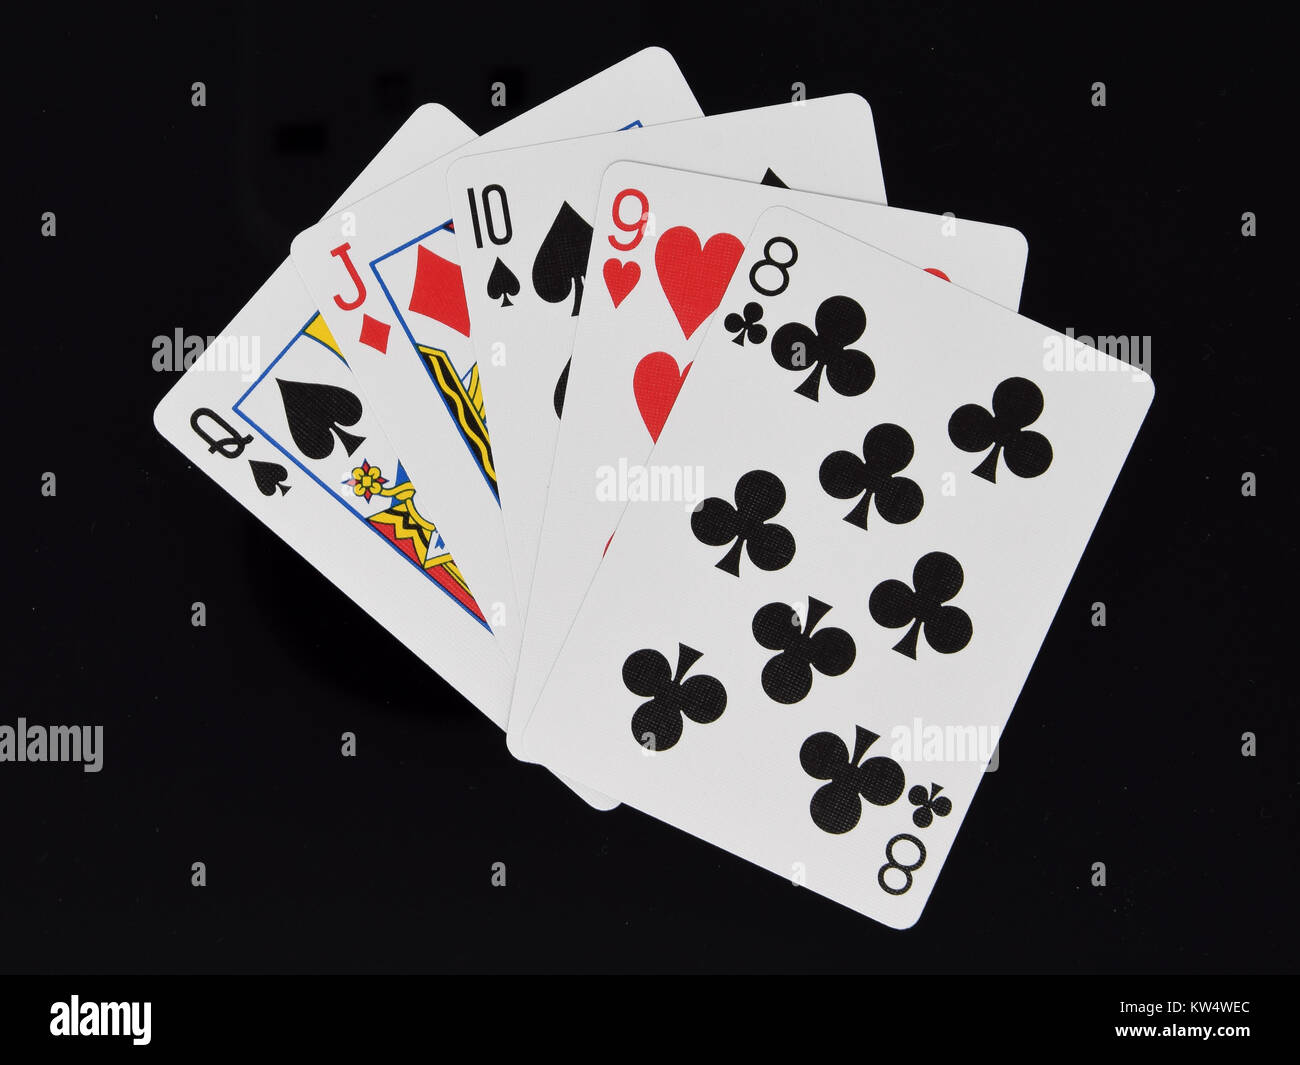 A Straight hand in poker card game - Stock Image